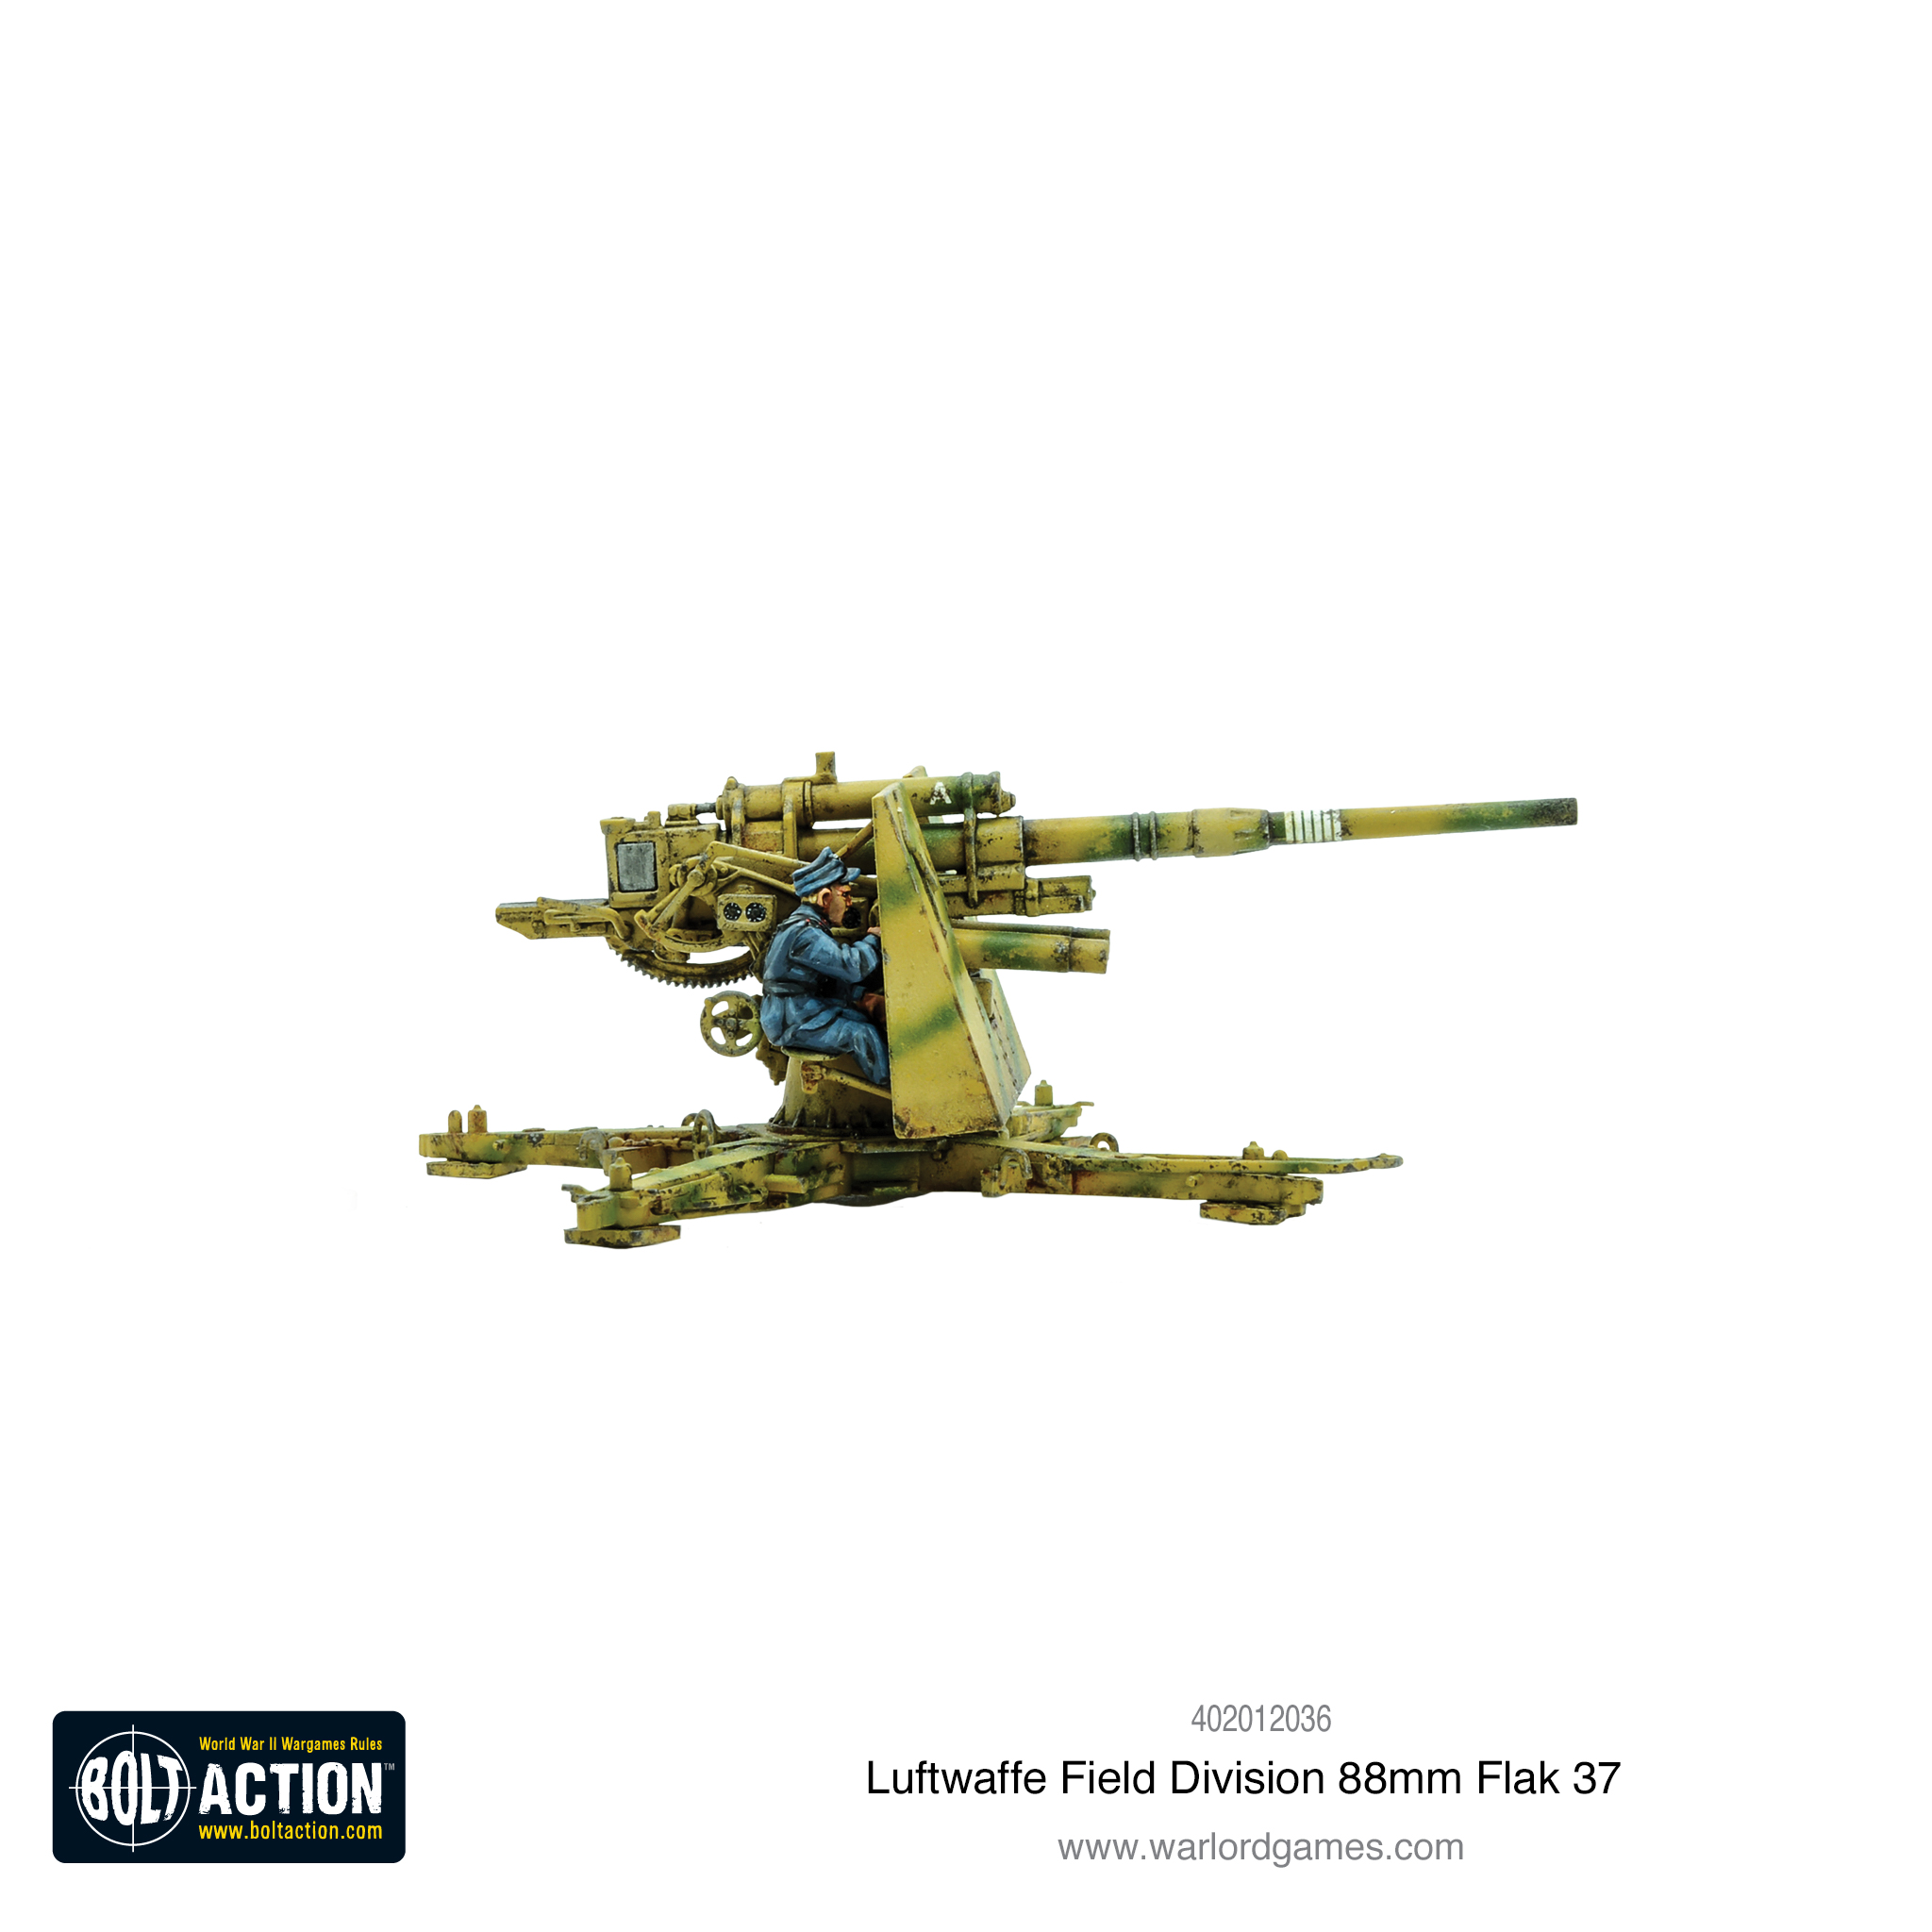 New: Luftwaffe Field Division 88mm Flak 37 - Warlord Games